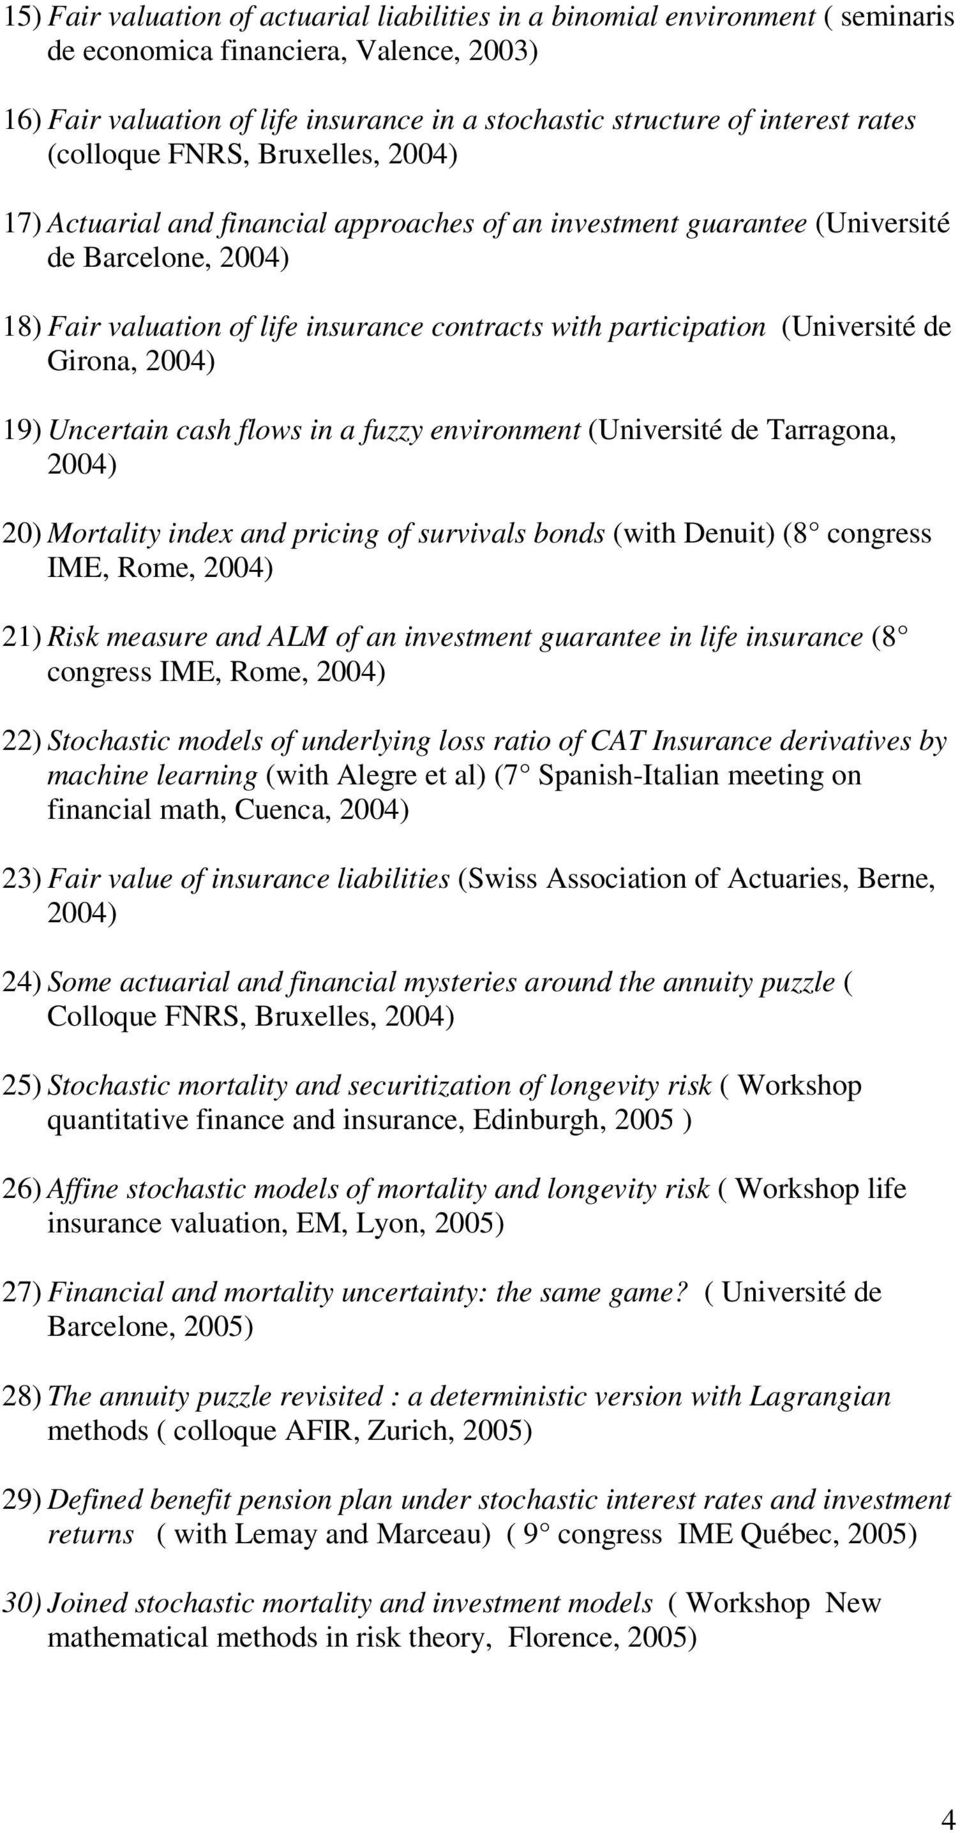 participation (Université de Girona, 2004) 19) Uncertain cash flows in a fuzzy environment (Université de Tarragona, 2004) 20) Mortality index and pricing of survivals bonds (with Denuit) (8 congress